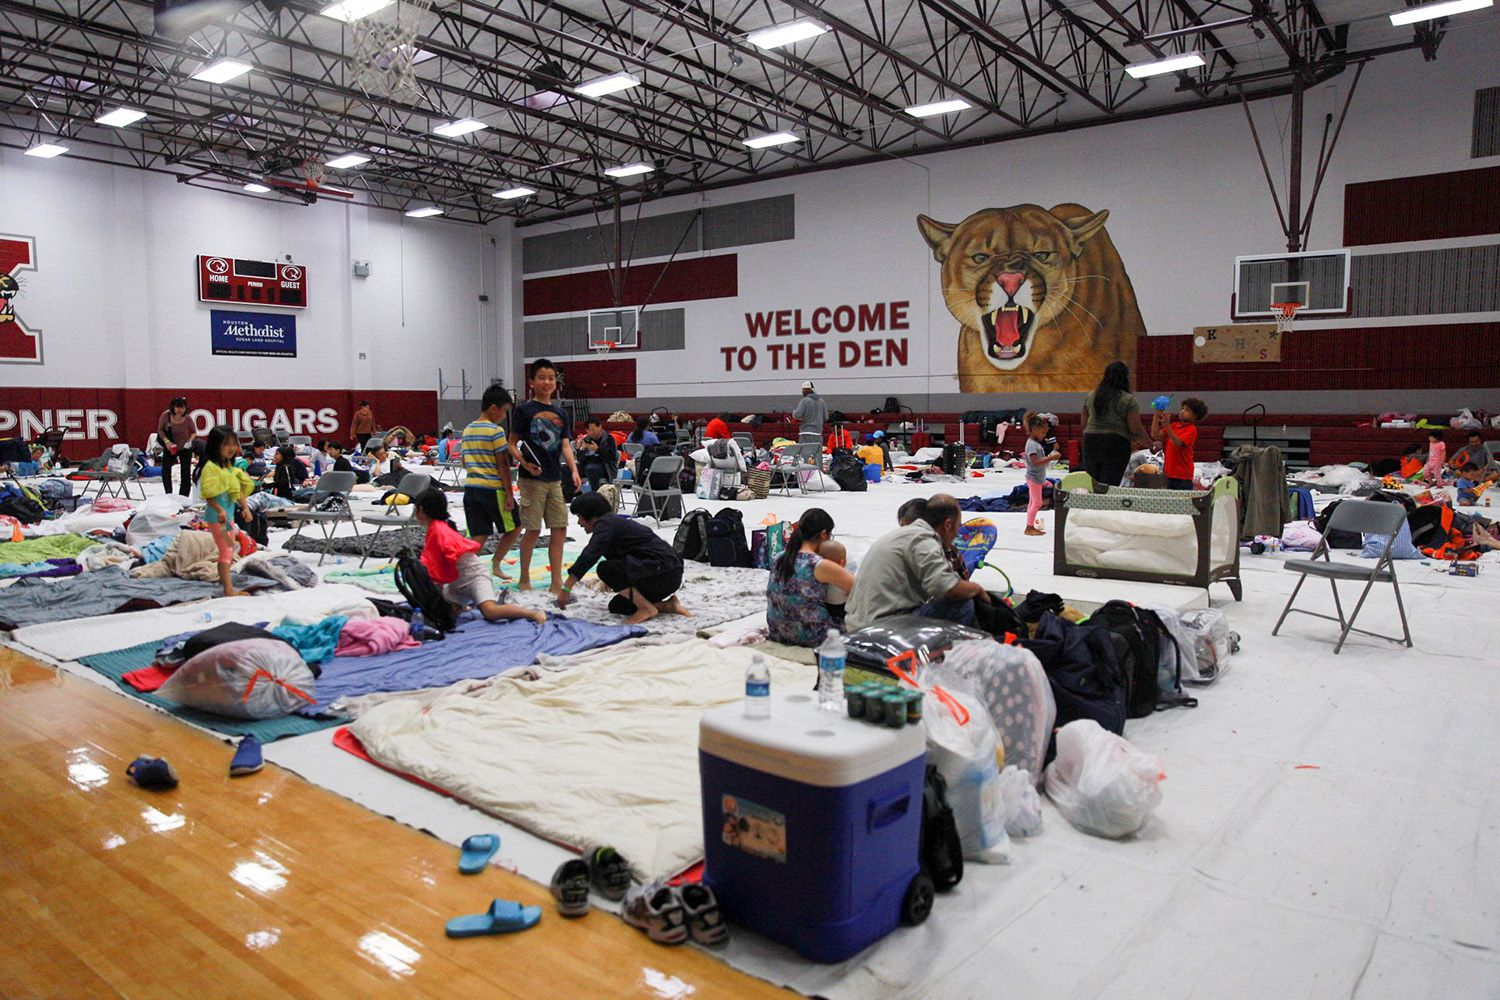 The gym at Kempner High School in Sugarland, in Fort Bend Co. southwest of Houston, was converted to a shelter during Hurricane Harvey.